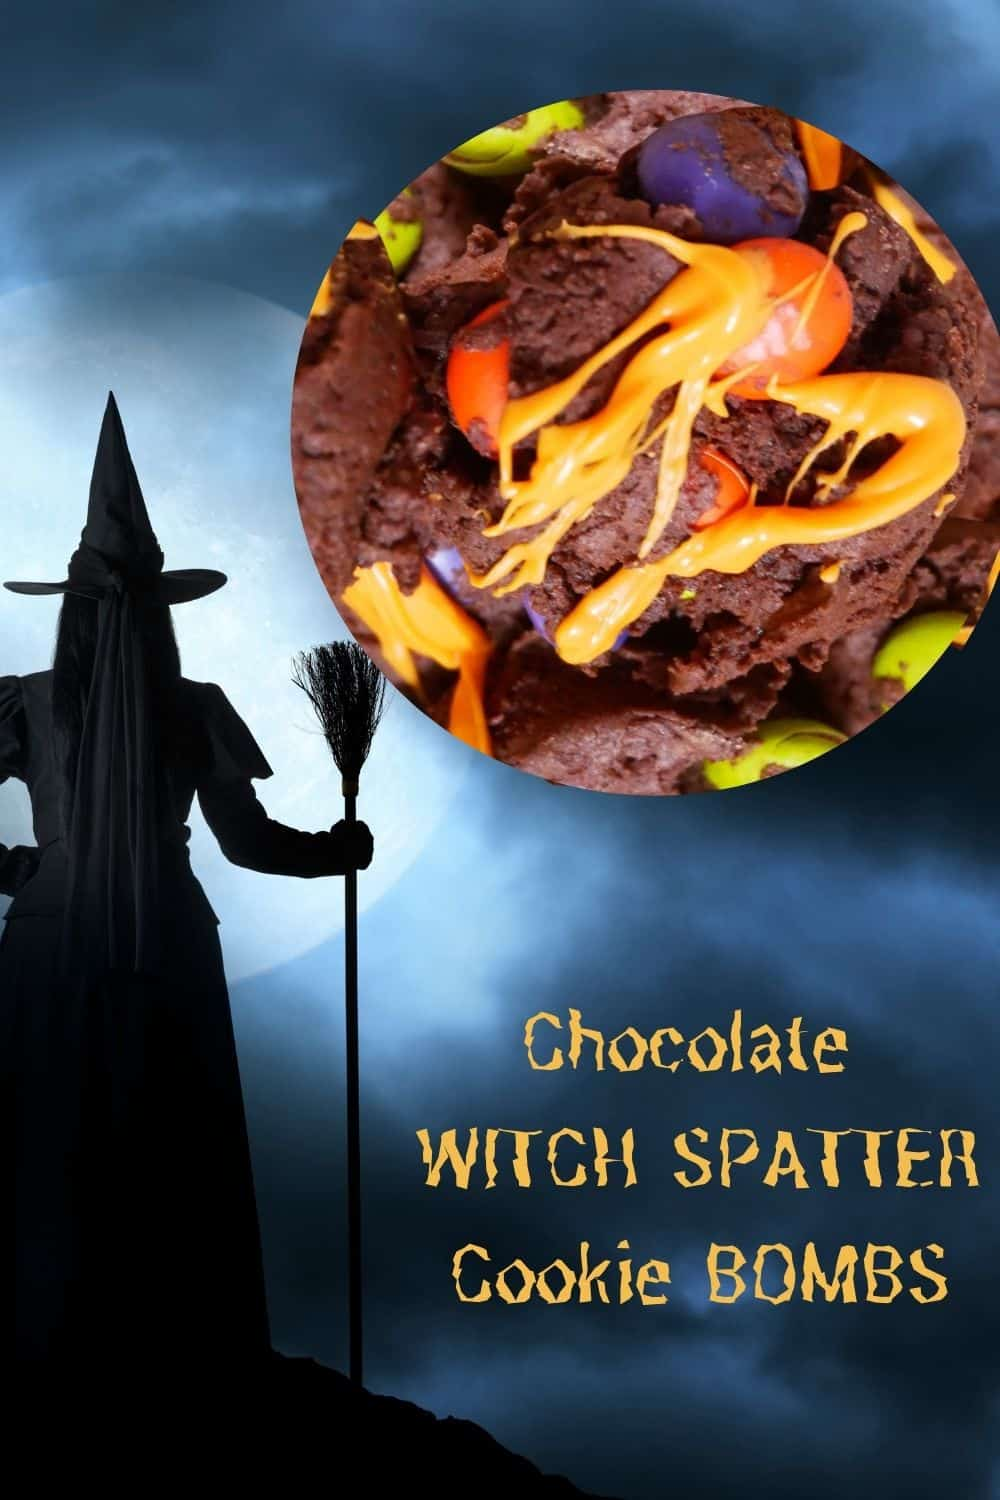 Chocolate Witch Cookie Bombs as the MOON